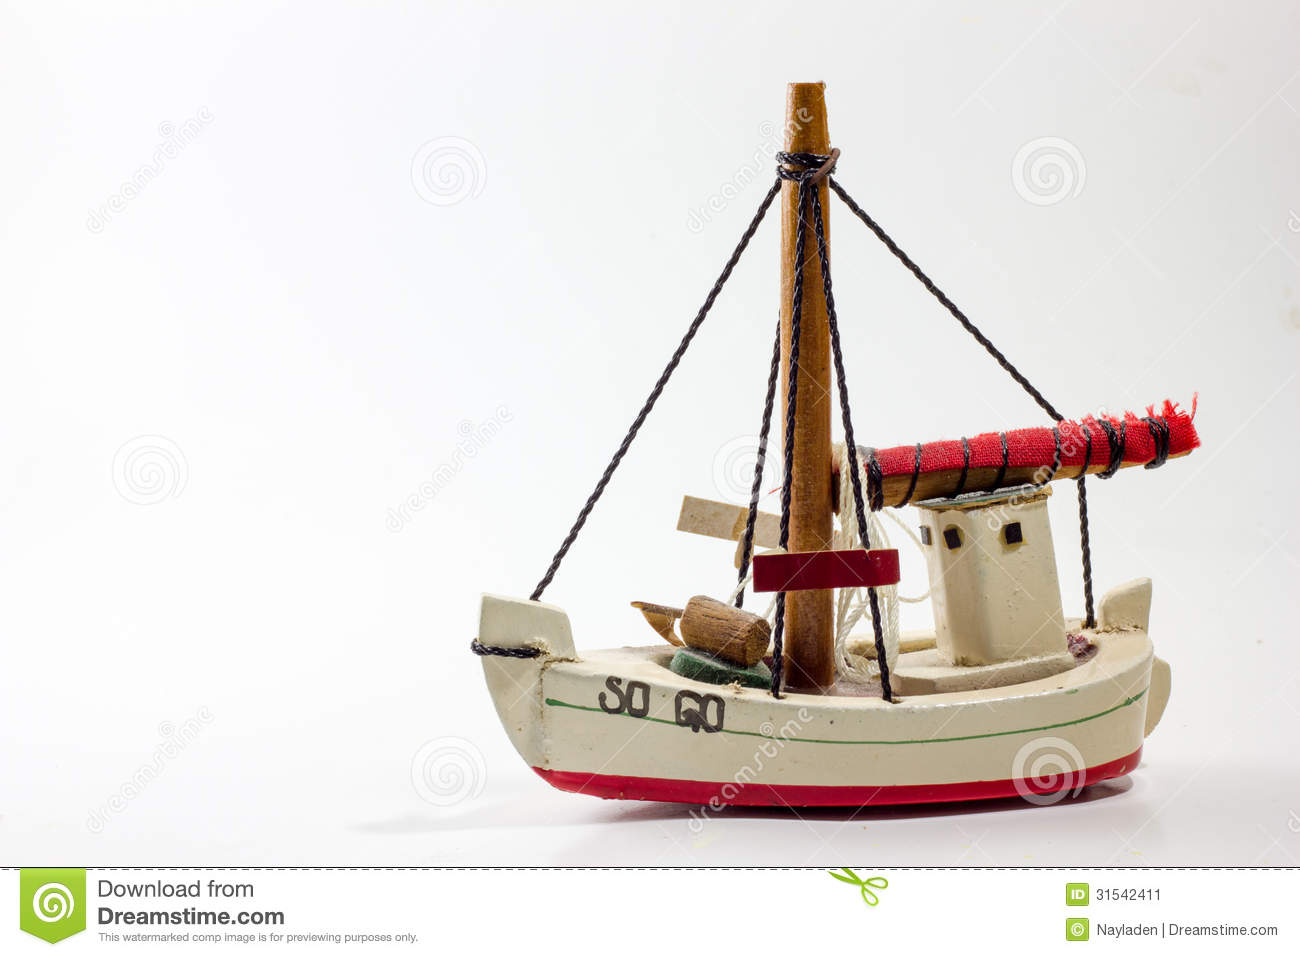 Old wooden toy boat stock image. Image of explore, retro - 31542411